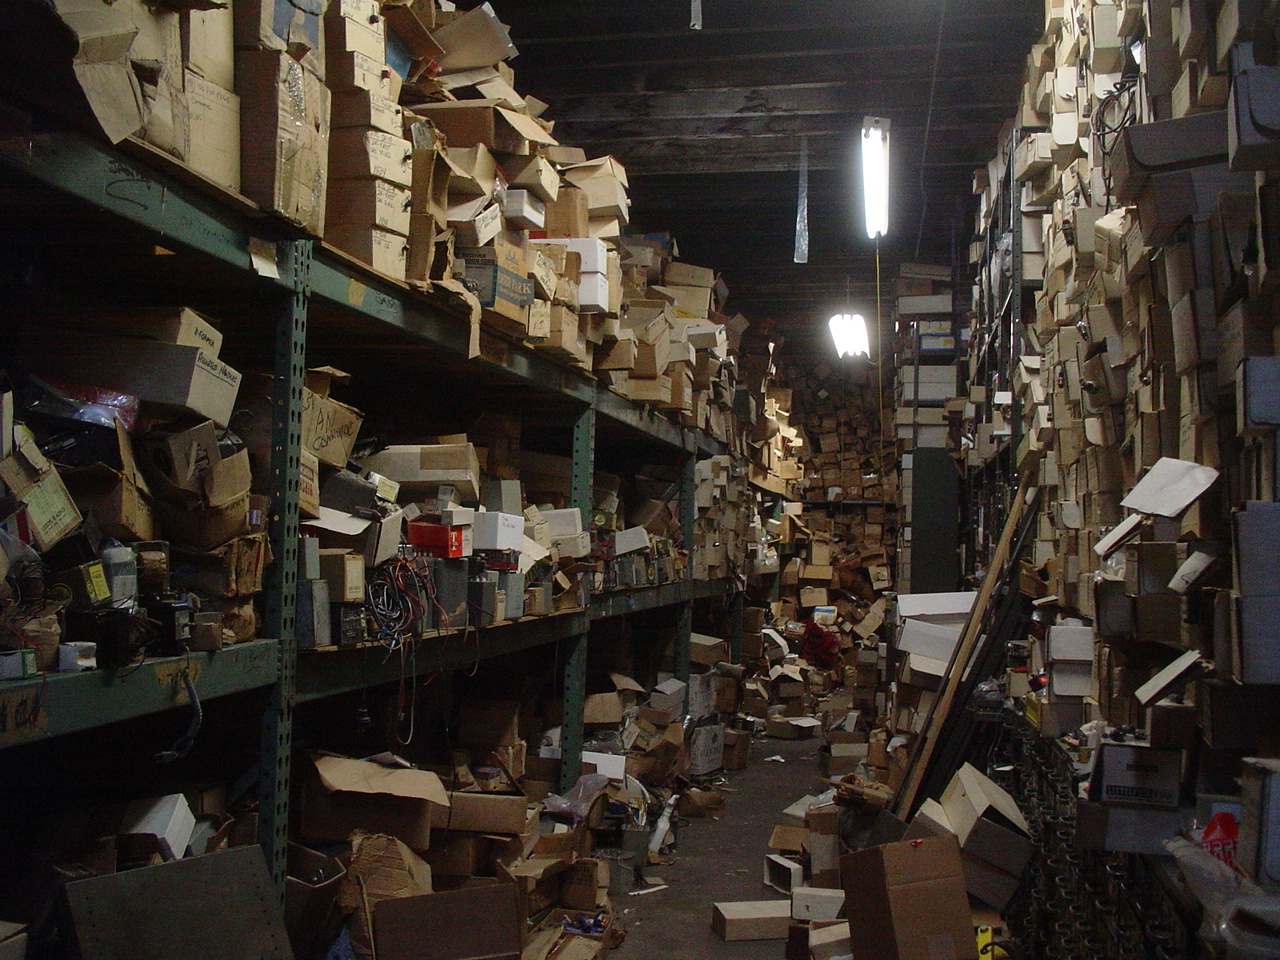 """Messy storage room with boxes"" by i ♥ happy!! from NY, NY - Flickr. Licensed under CC BY 2.0 via Wikimedia Commons - https://commons.wikimedia.org/wiki/File:Messy_storage_room_with_boxes.jpg#/media/File:Messy_storage_room_with_boxes.jpg"